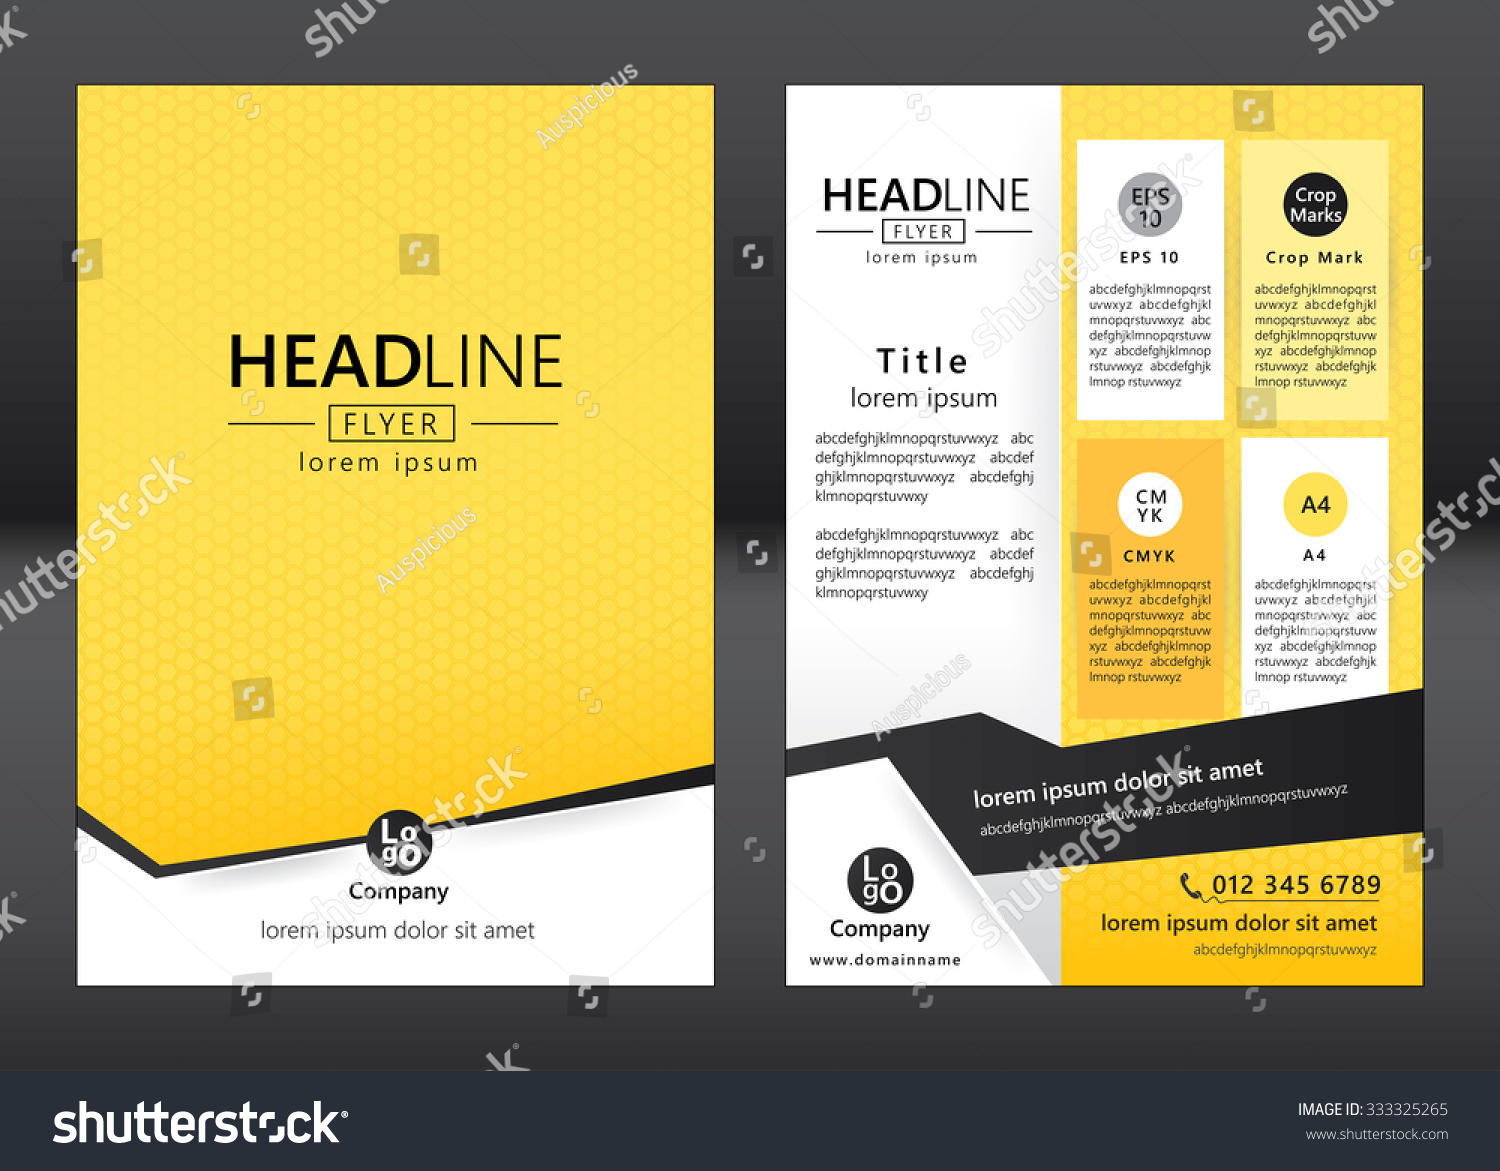 Brochure template design geometric pattern square stock for Graphic design brochure templates